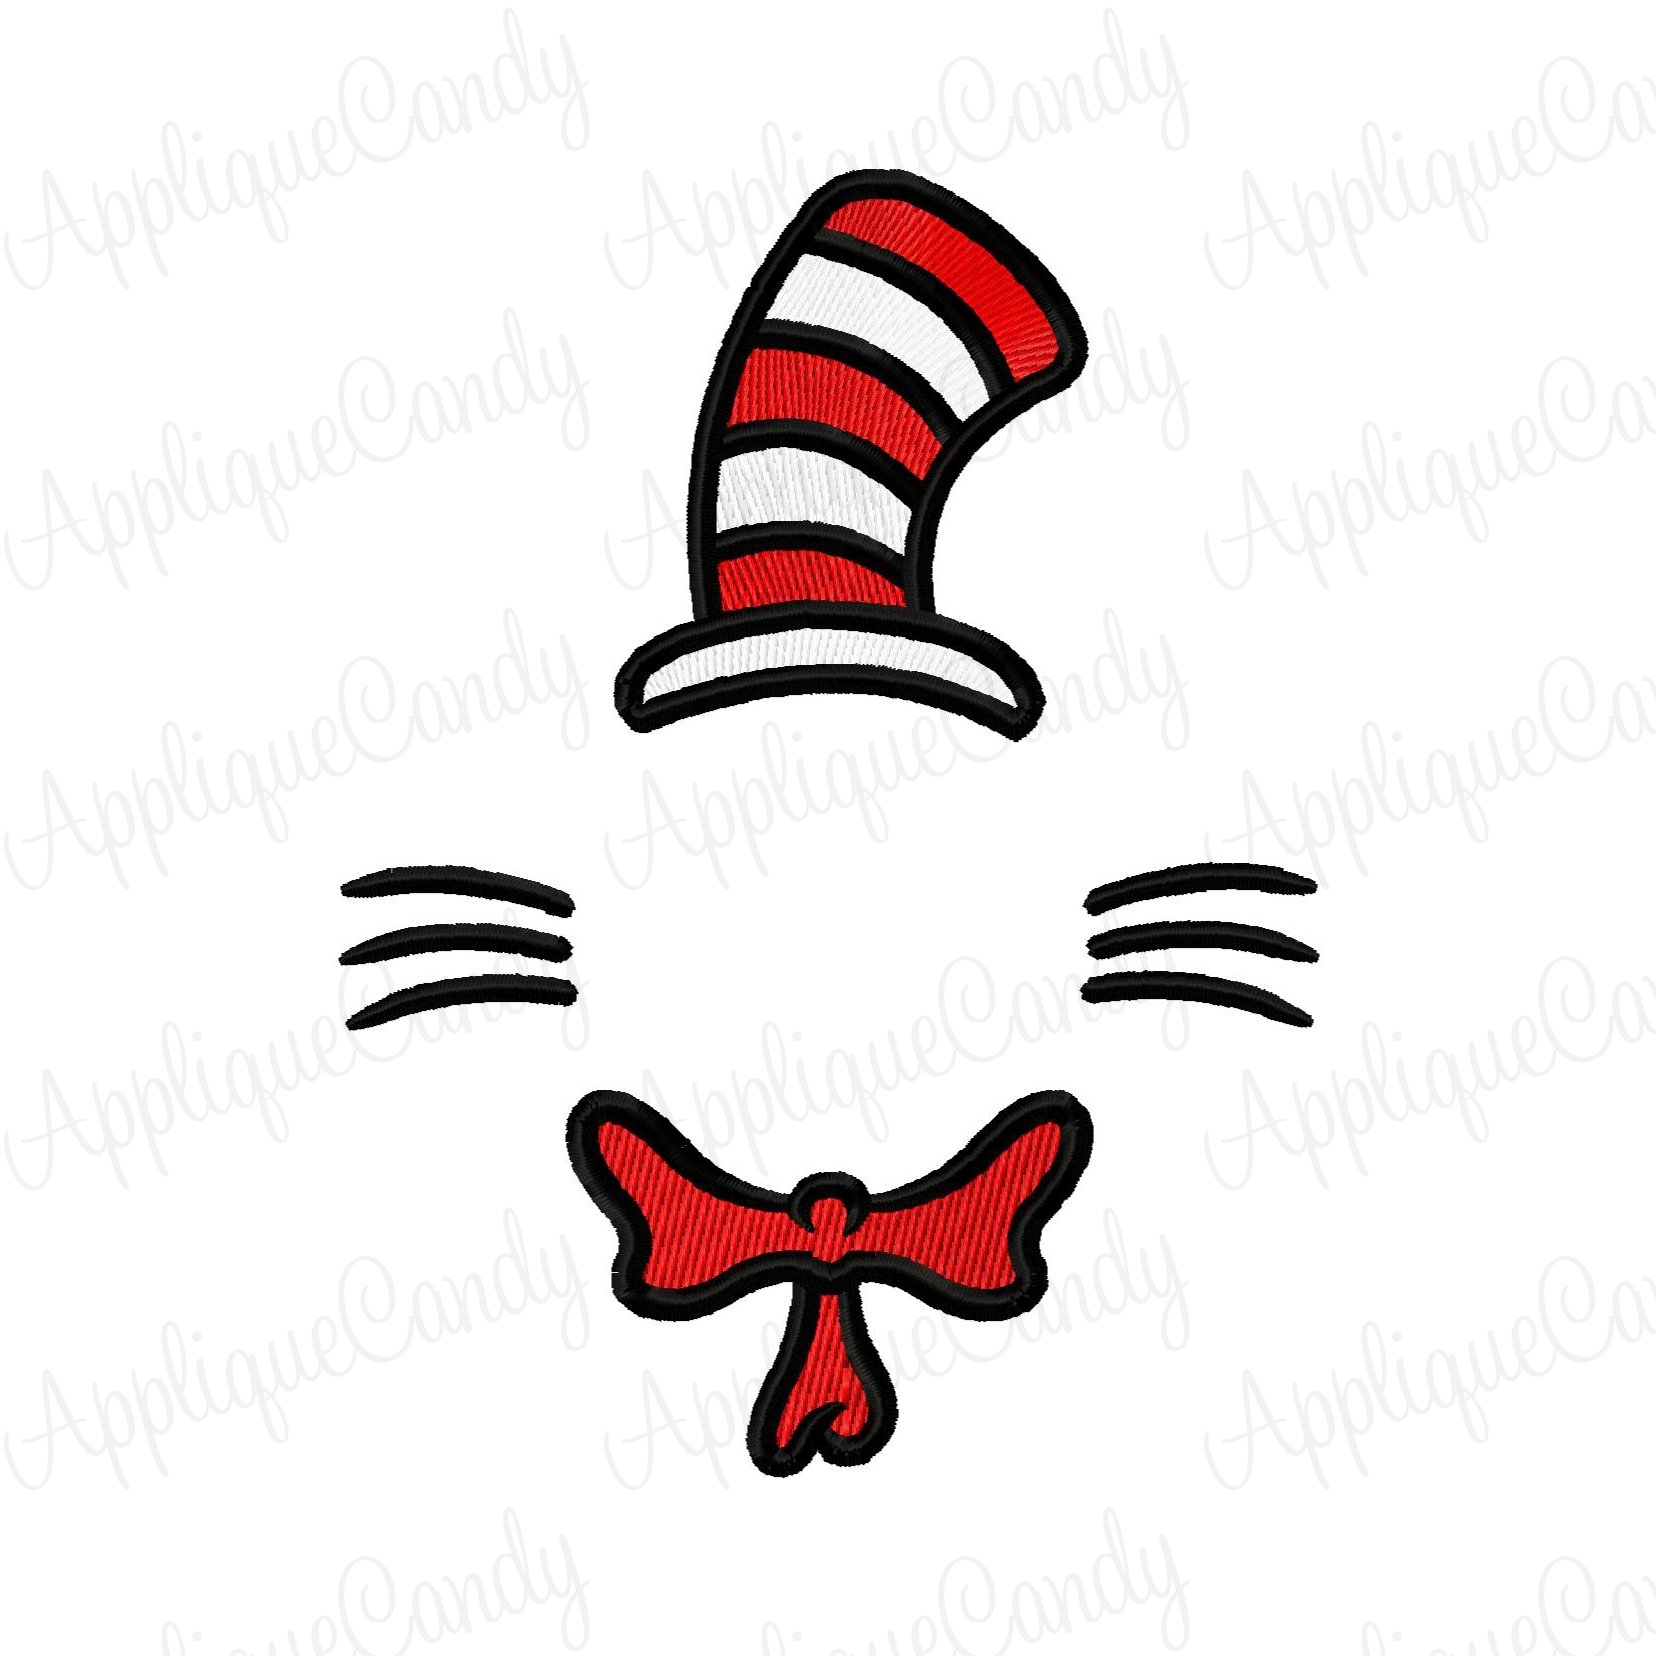 Cat in the hat clipart graphics library Cat In The Hat Graphics | Free download best Cat In The Hat Graphics ... library